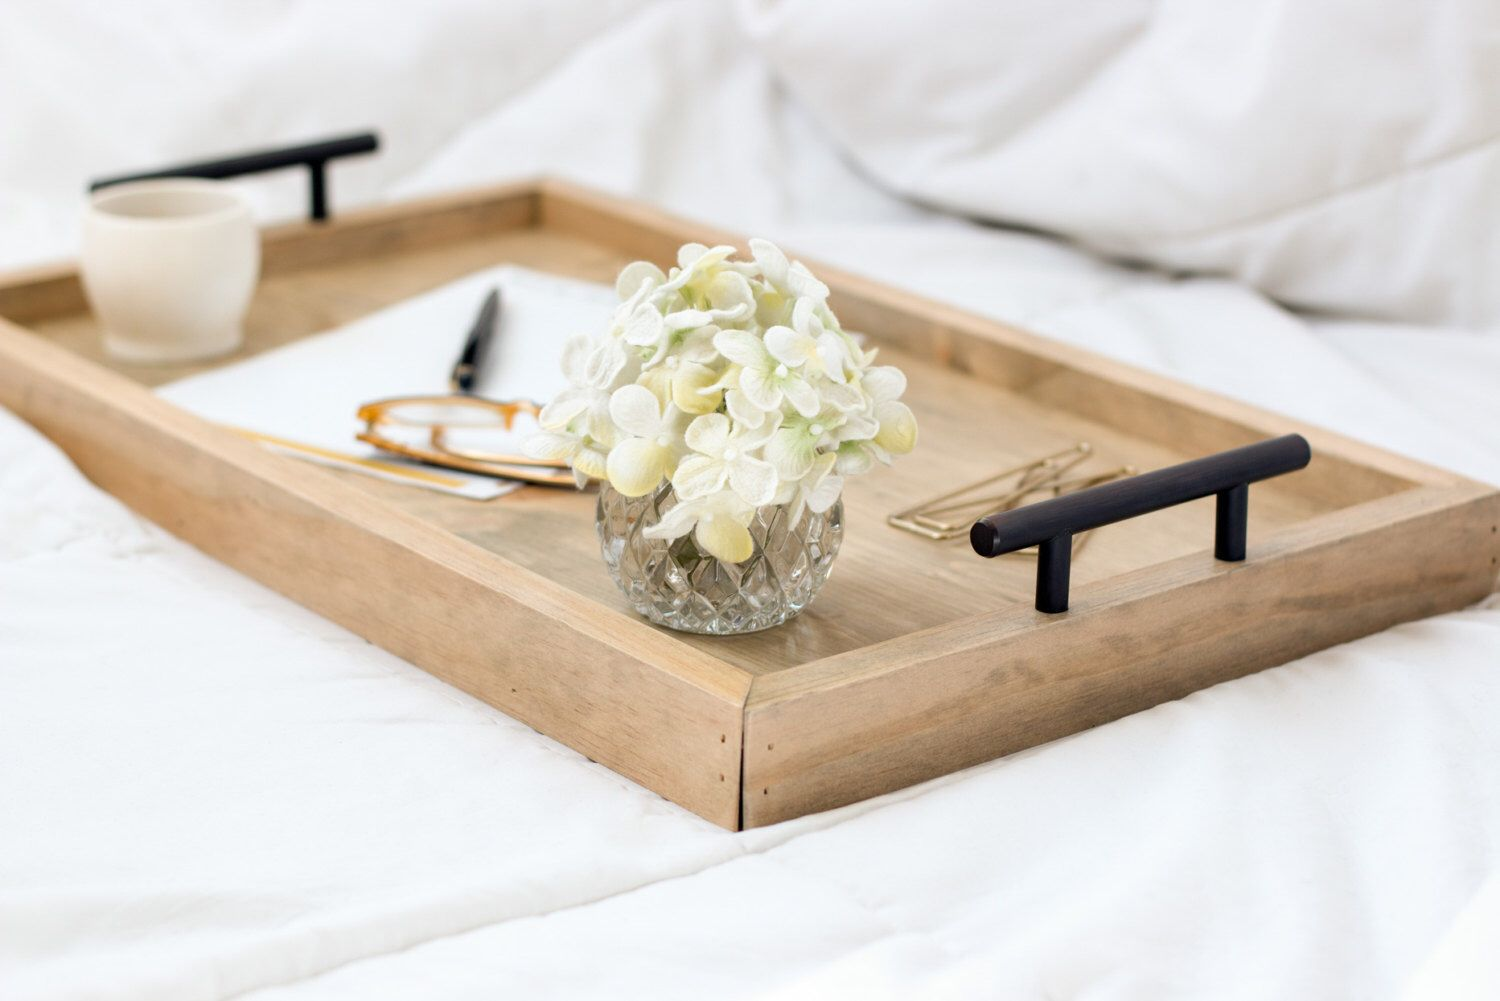 Breakfast Trays For Bed Glamorous Serving Tray Wood Serving Tray Breakfast Tray Housewarming Gift Design Decoration